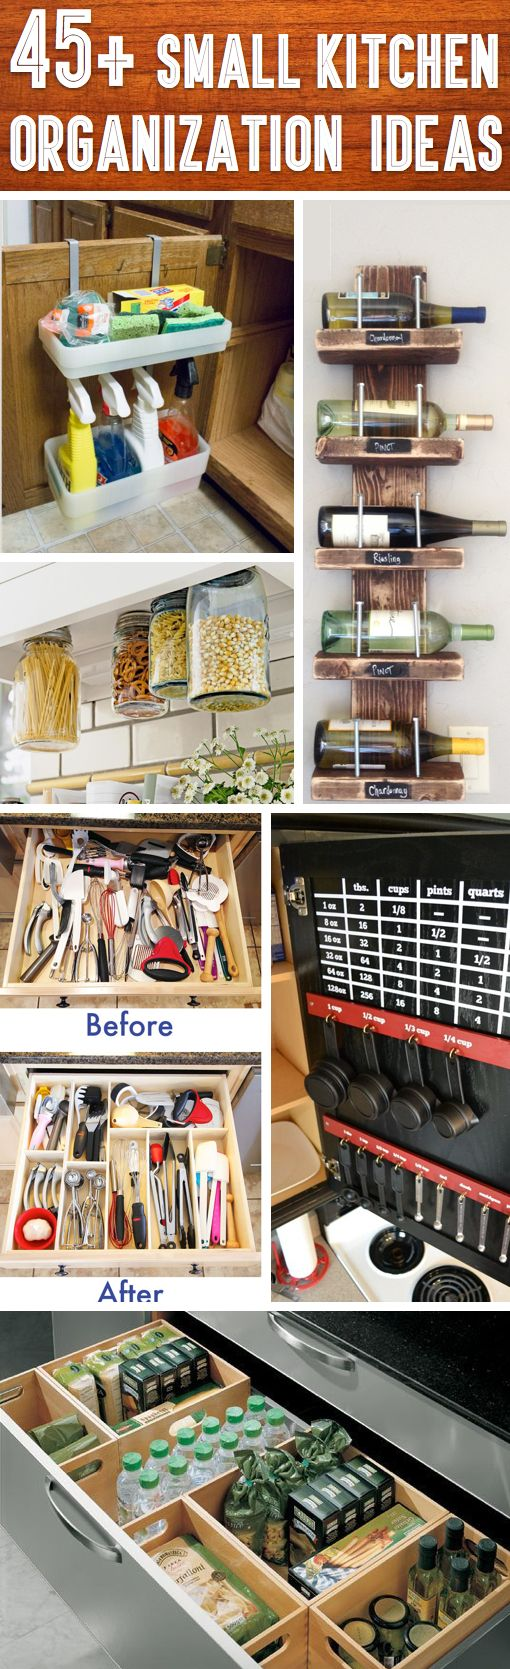 Get Rid Of All The Household Clutter Creatively! Household clutter is anything but a new thing, and every woman has dealt with unnecessary clutter at least once. Here are 15 creative ideas that will help you de-clutter your kitchen in a fancy, efficient and eco-friendly way!